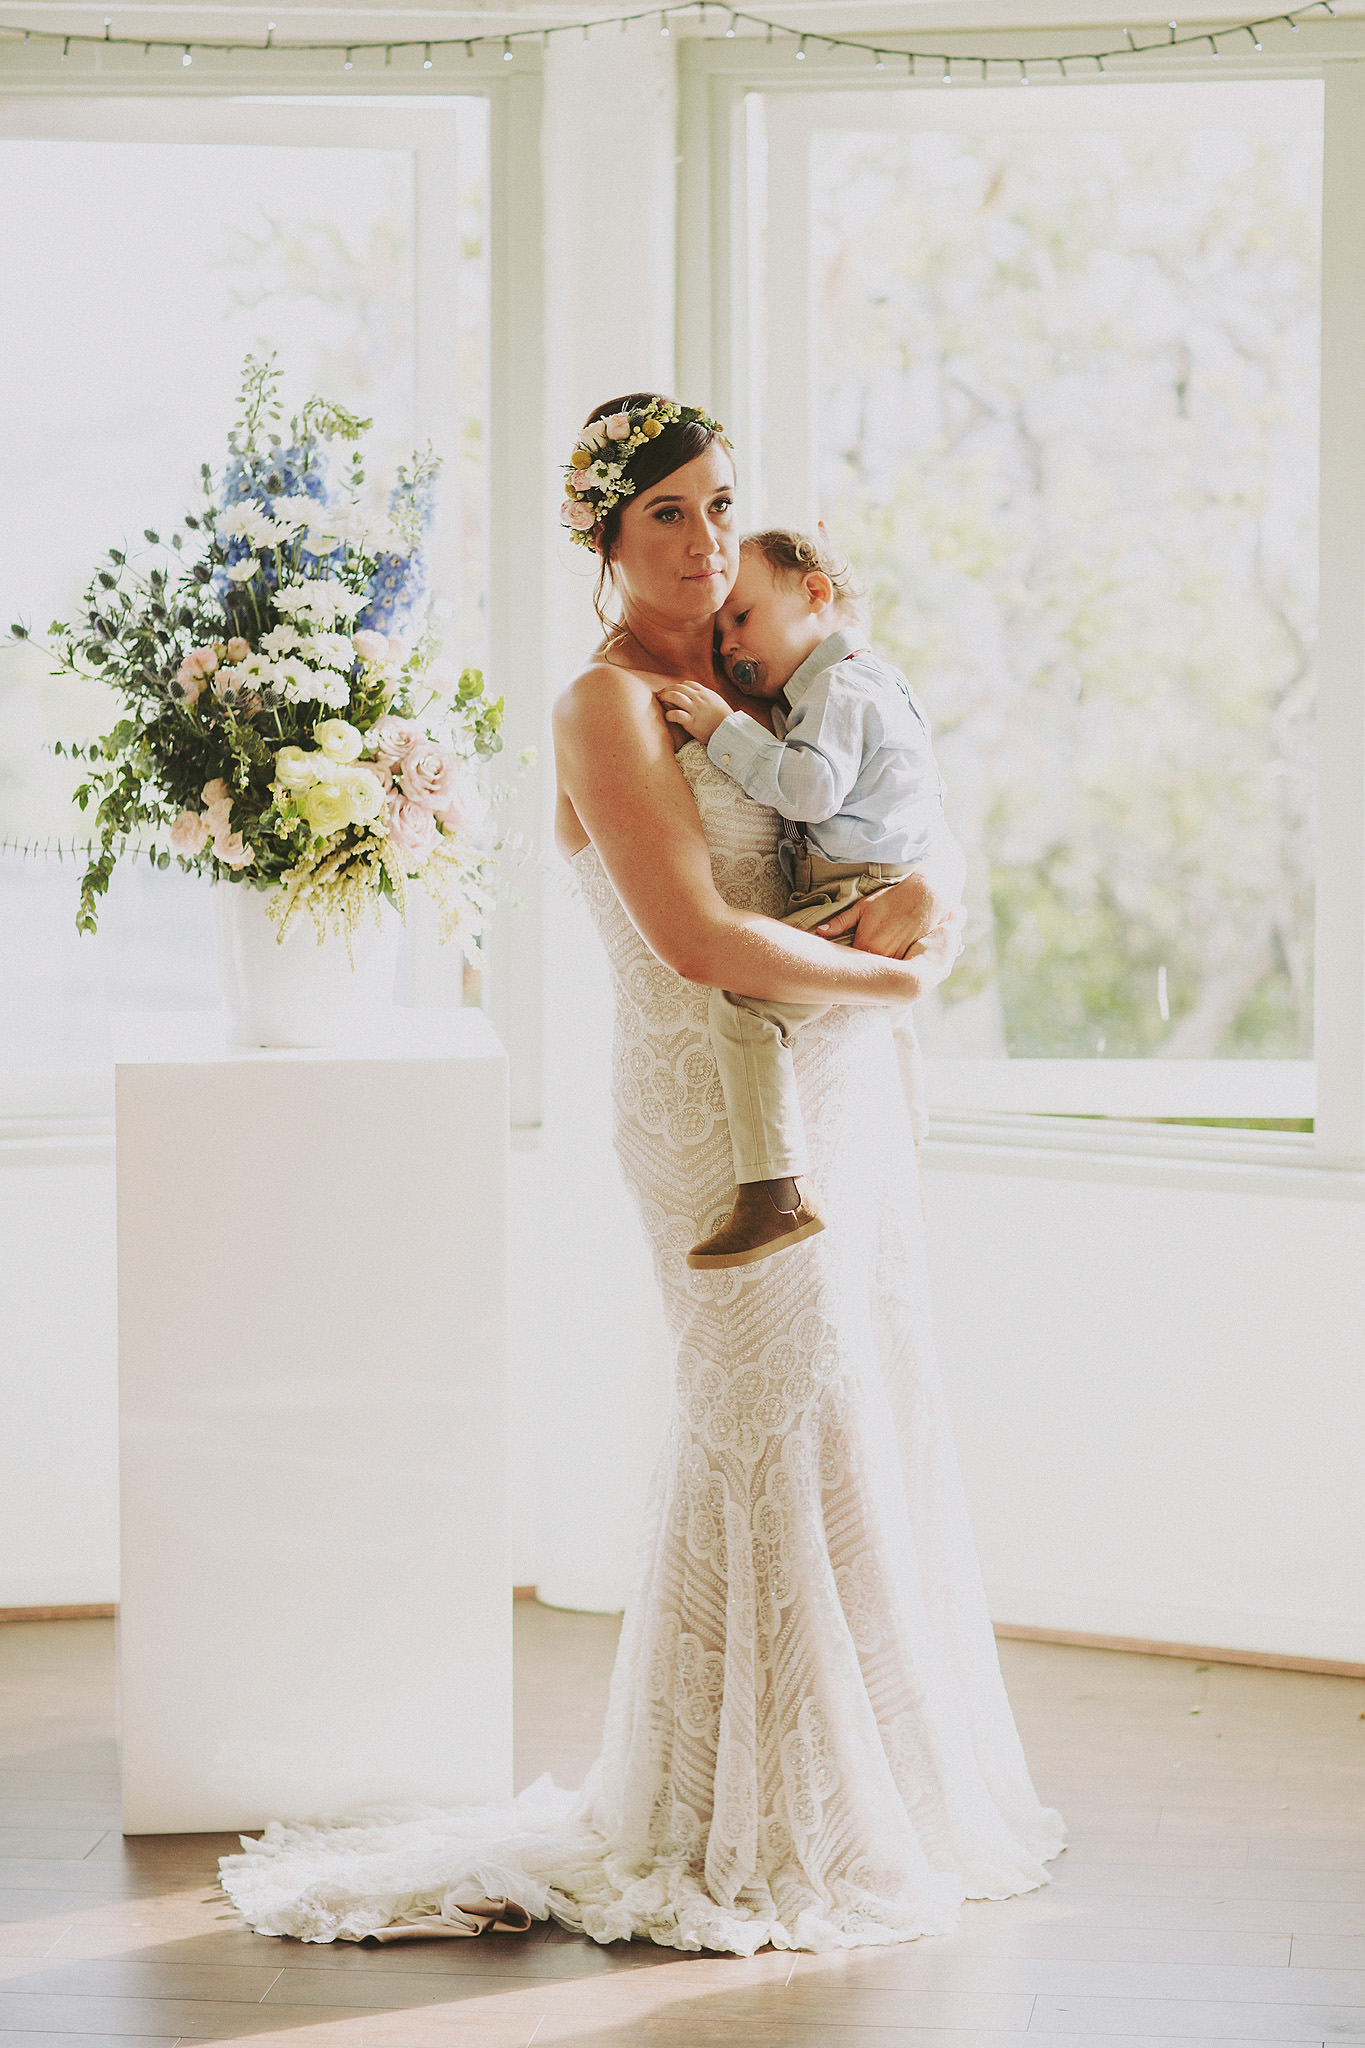 Beautiful bride holding son during ceremony | Andrea Calodolce marriage celebrant sydney